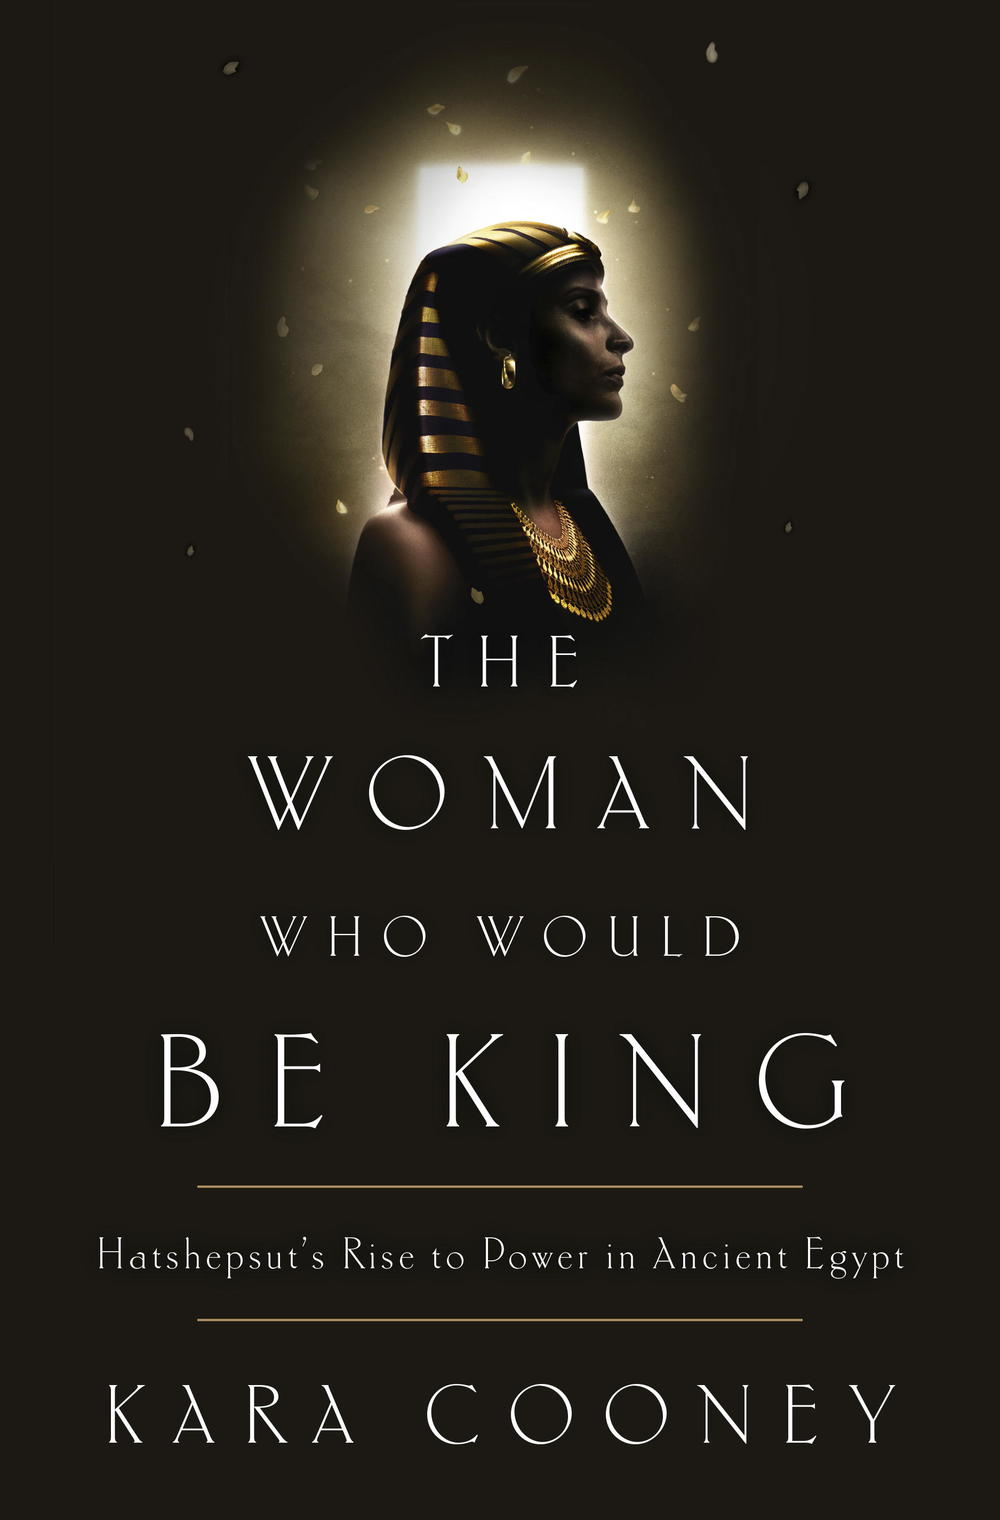 The Woman Who Would Be King  on Booktopia